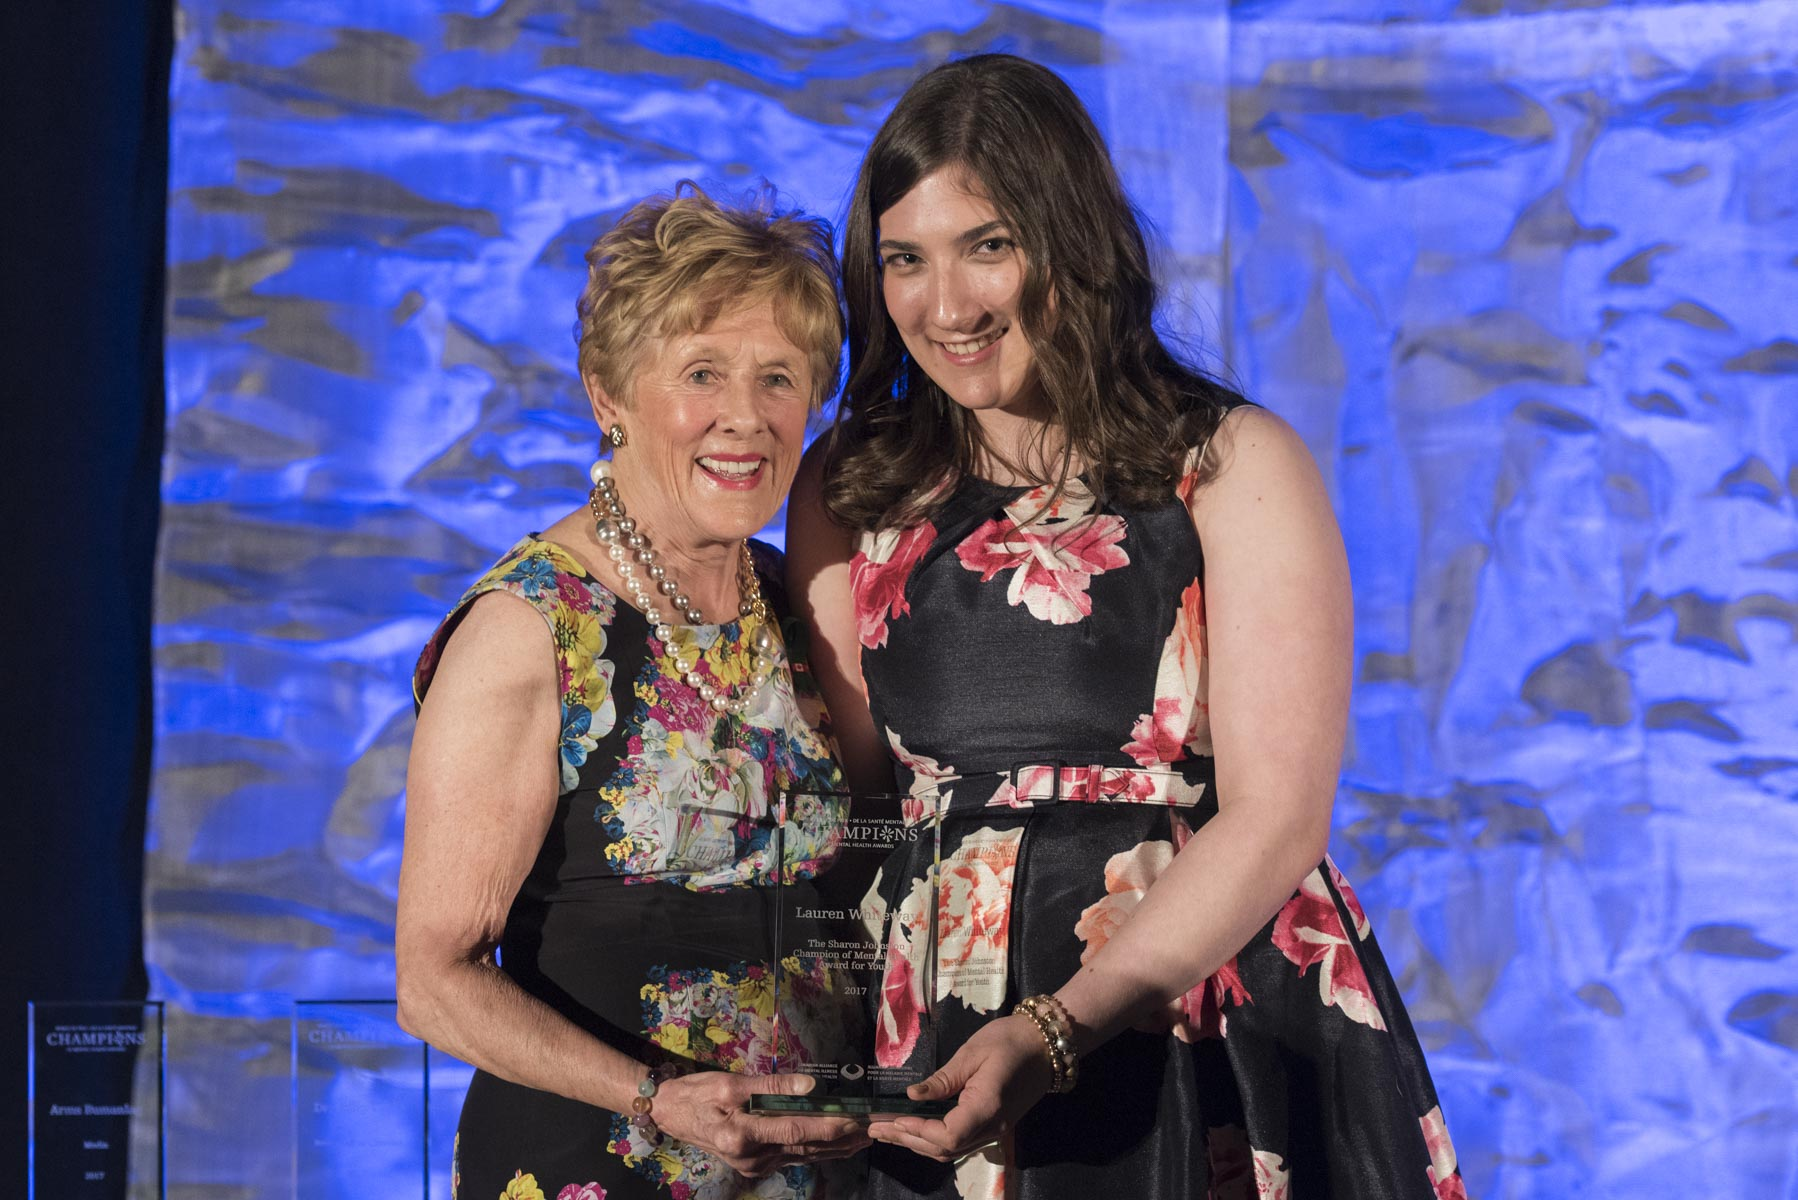 It was with great pride that Mrs. Johnston presented to her The Sharon Johnston Champion of Mental Health Award for Youth. This award is presented to a Canadian who is 21 years old or younger and who has shown leadership in his or her community by promoting mental health or mental illness awareness.